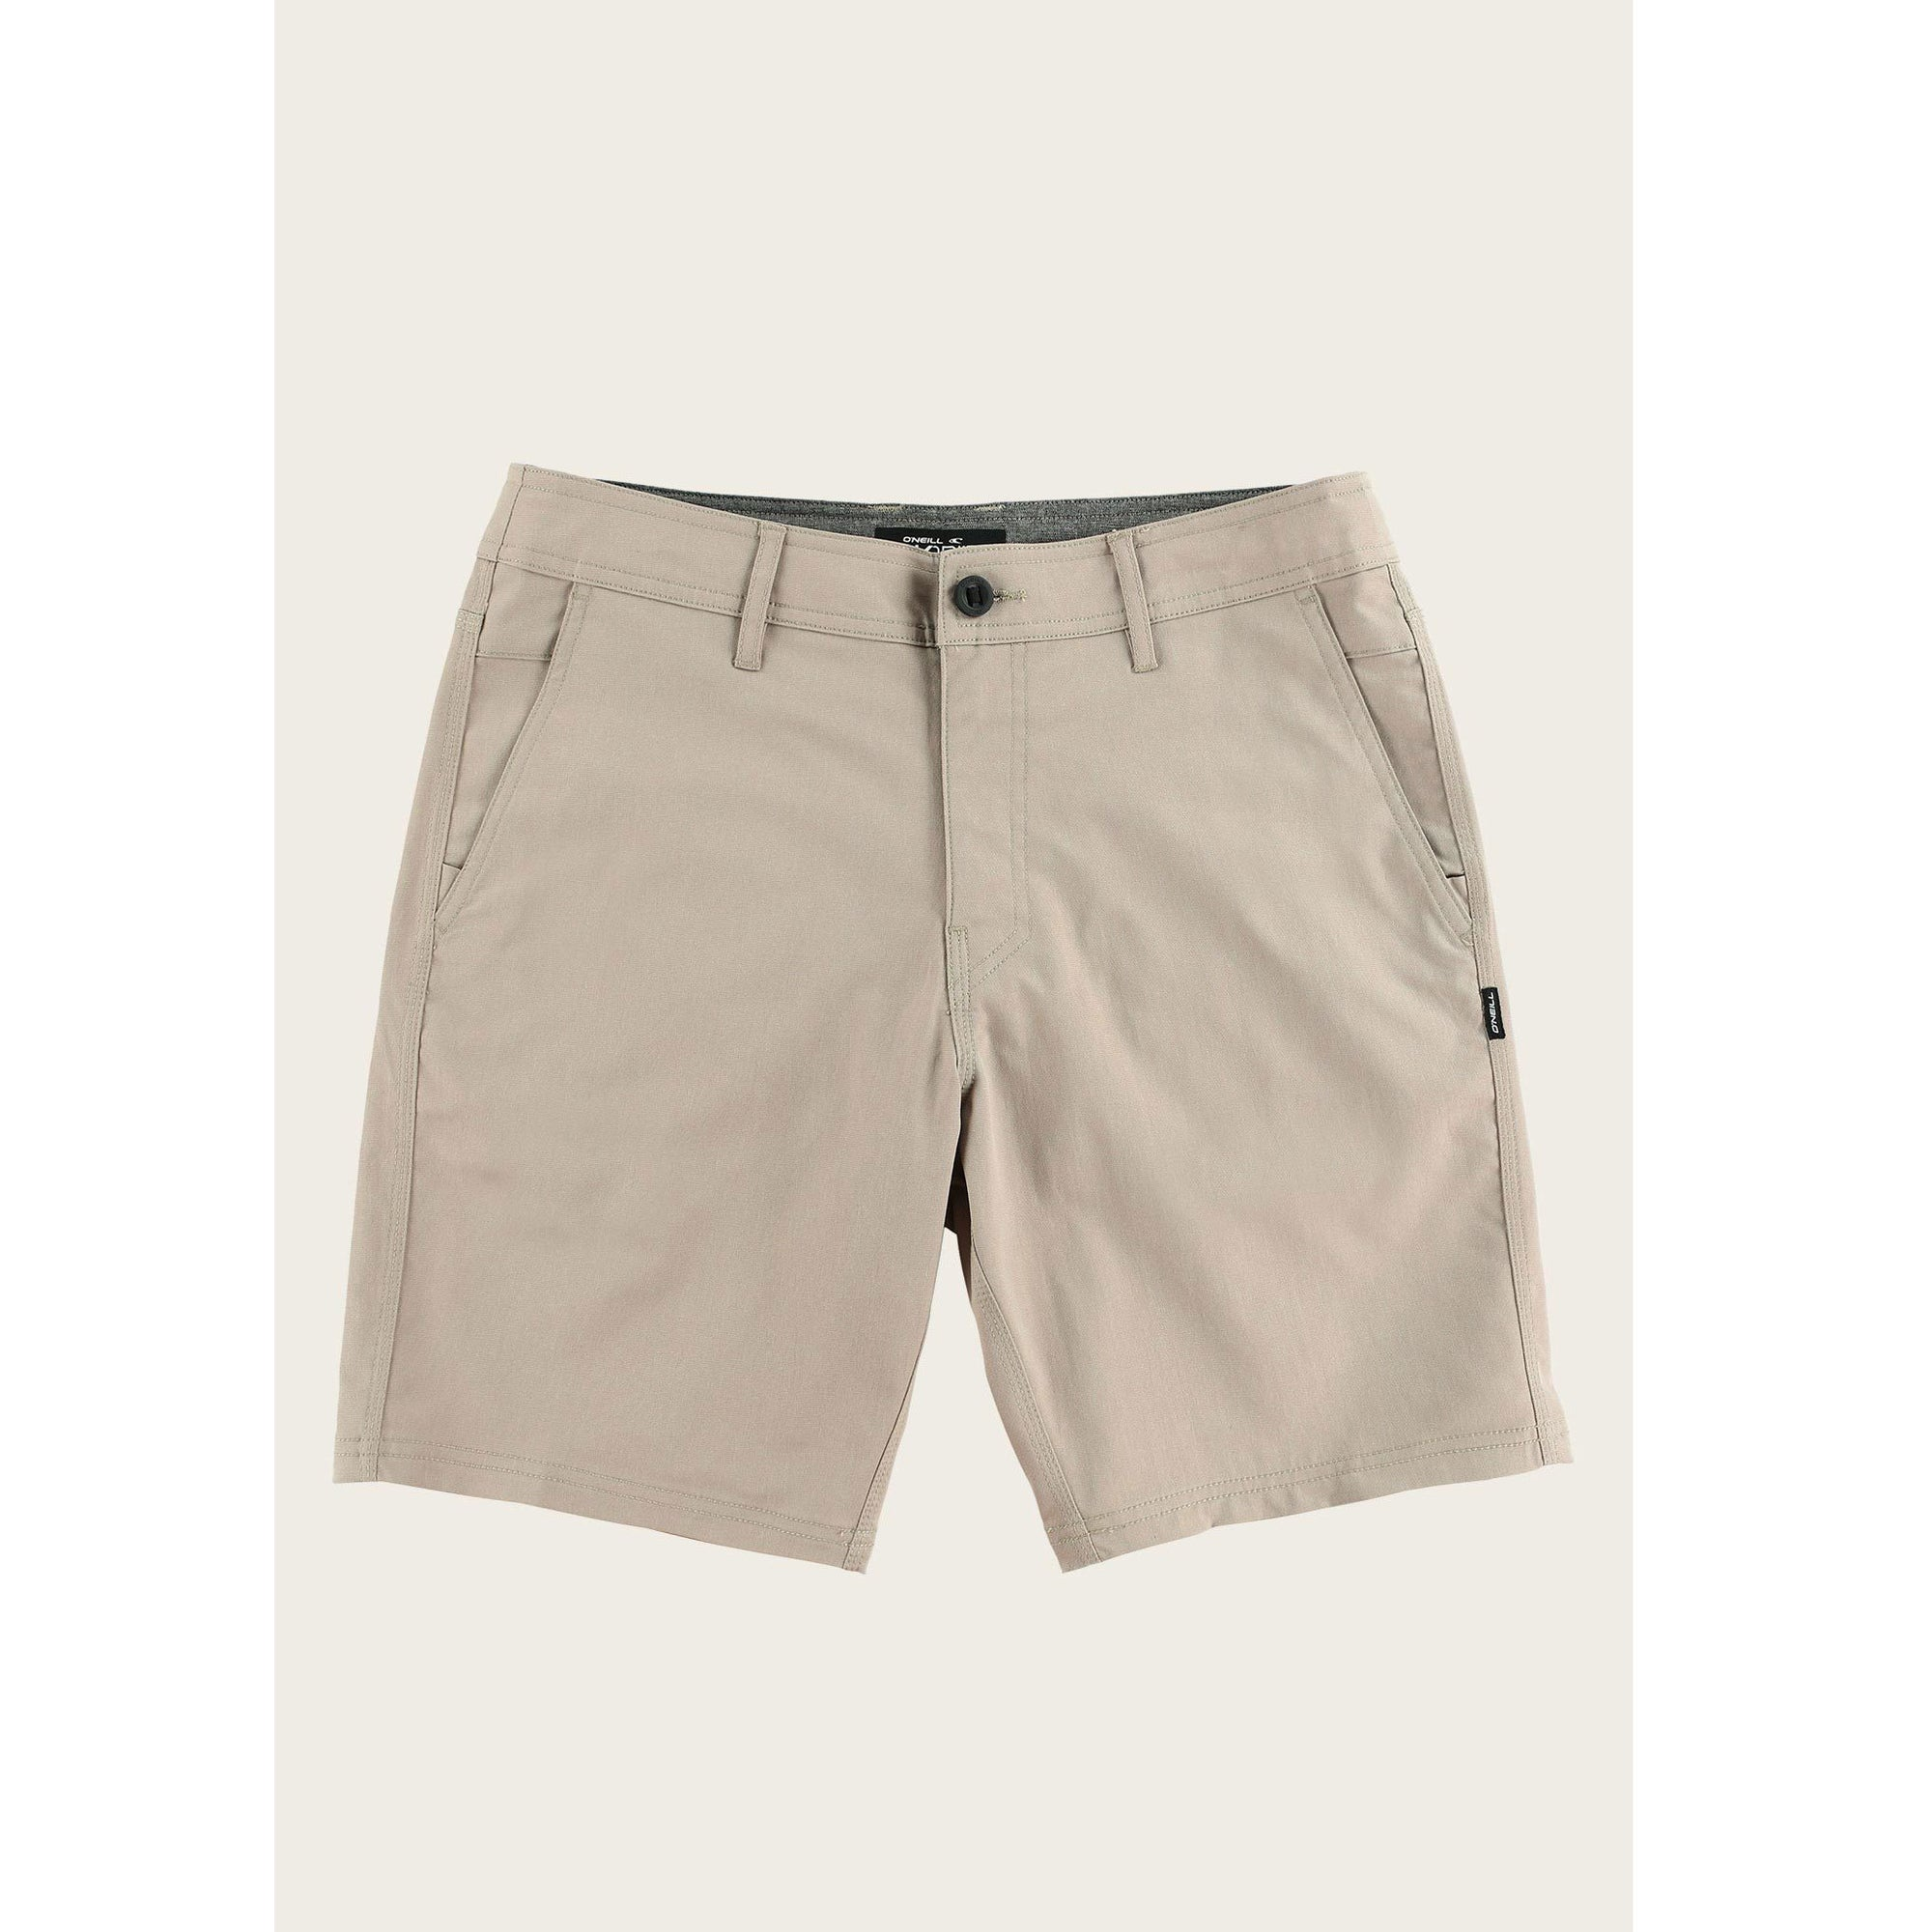 O'Neill Redlands Hybrid Men's Shorts